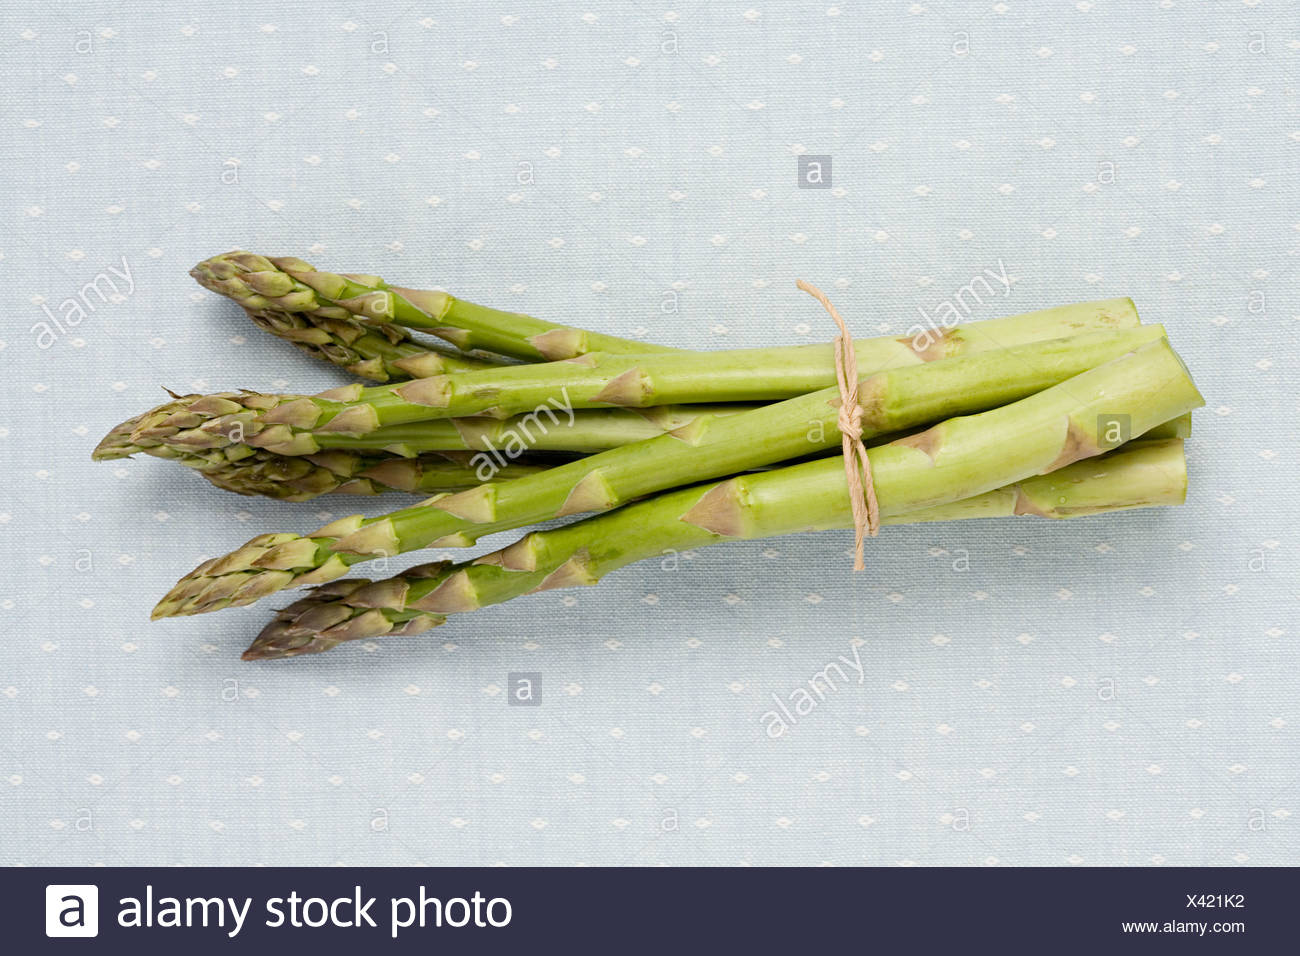 Bunch of asparagus - Stock Image